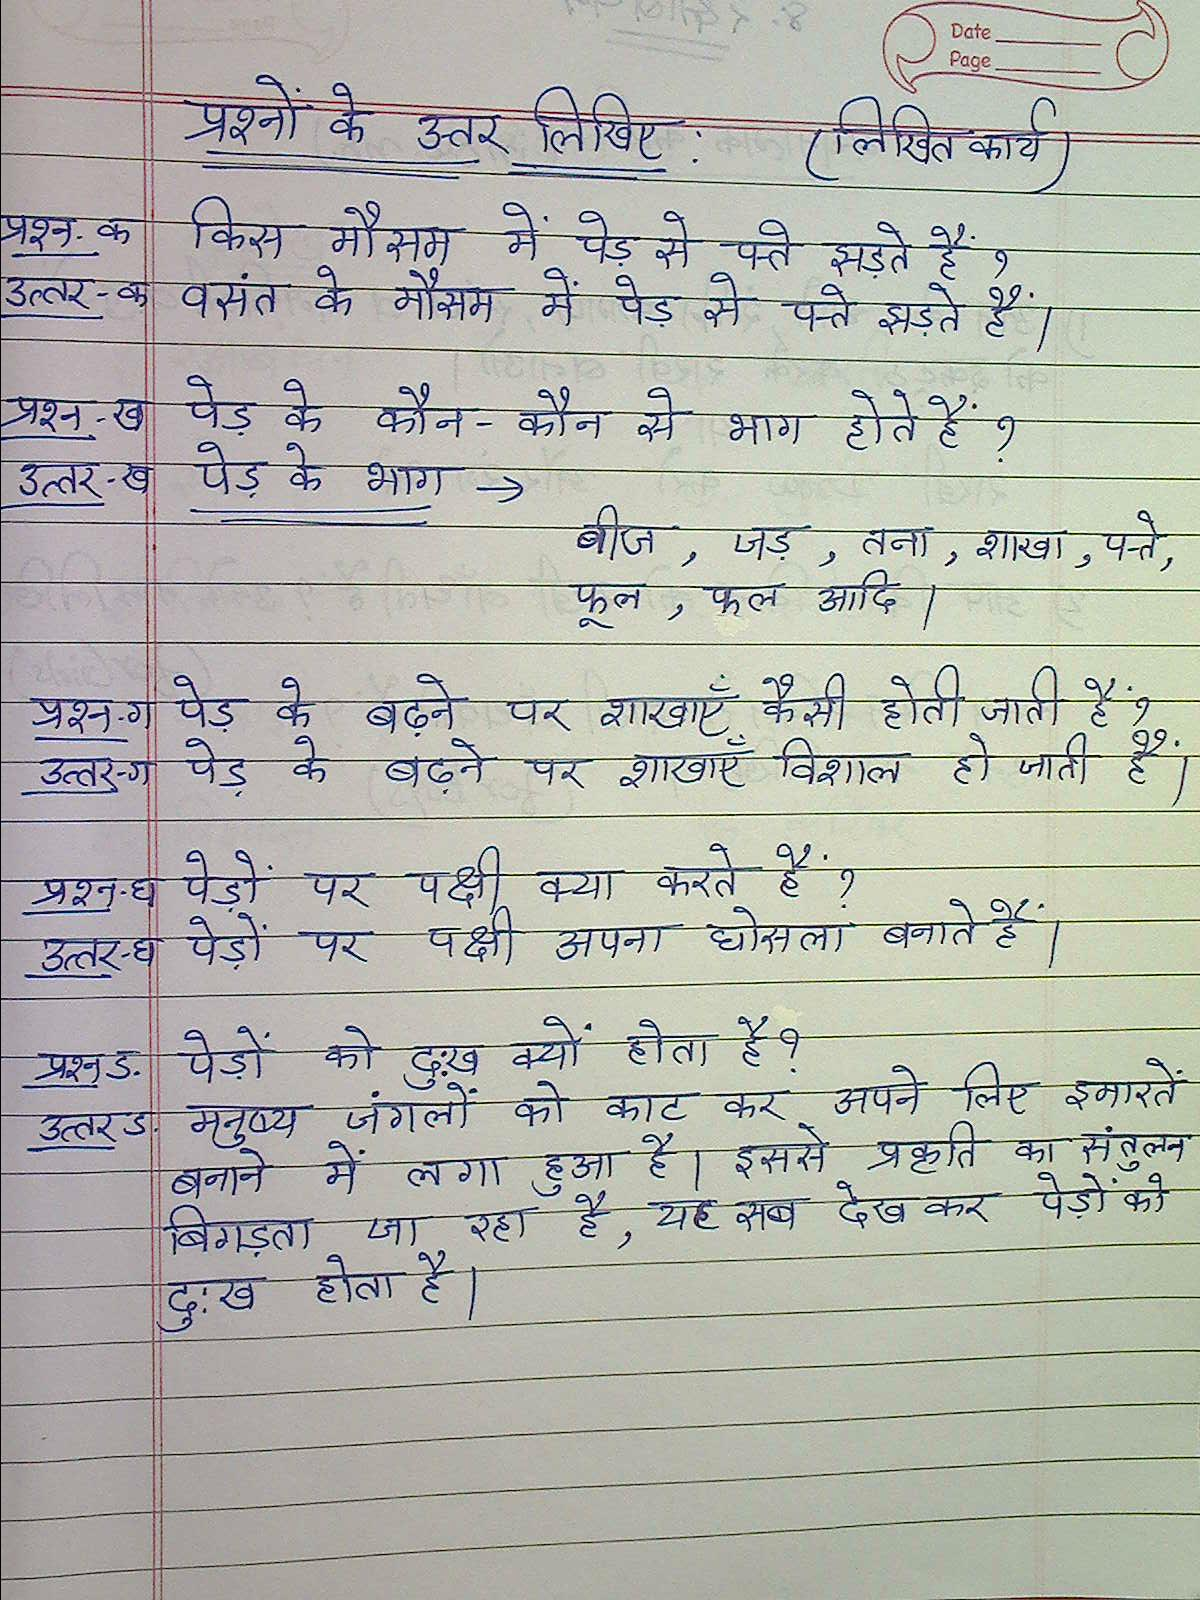 5 sentences on parrot in hindi Vocabulary in hindi – birds posted by nitin kumar on nov 20, 2012 in hindi language today, i have the vocabulary of birds for our hindi learners in hindi, bird(s) are called पक्षी ( pakshi ).